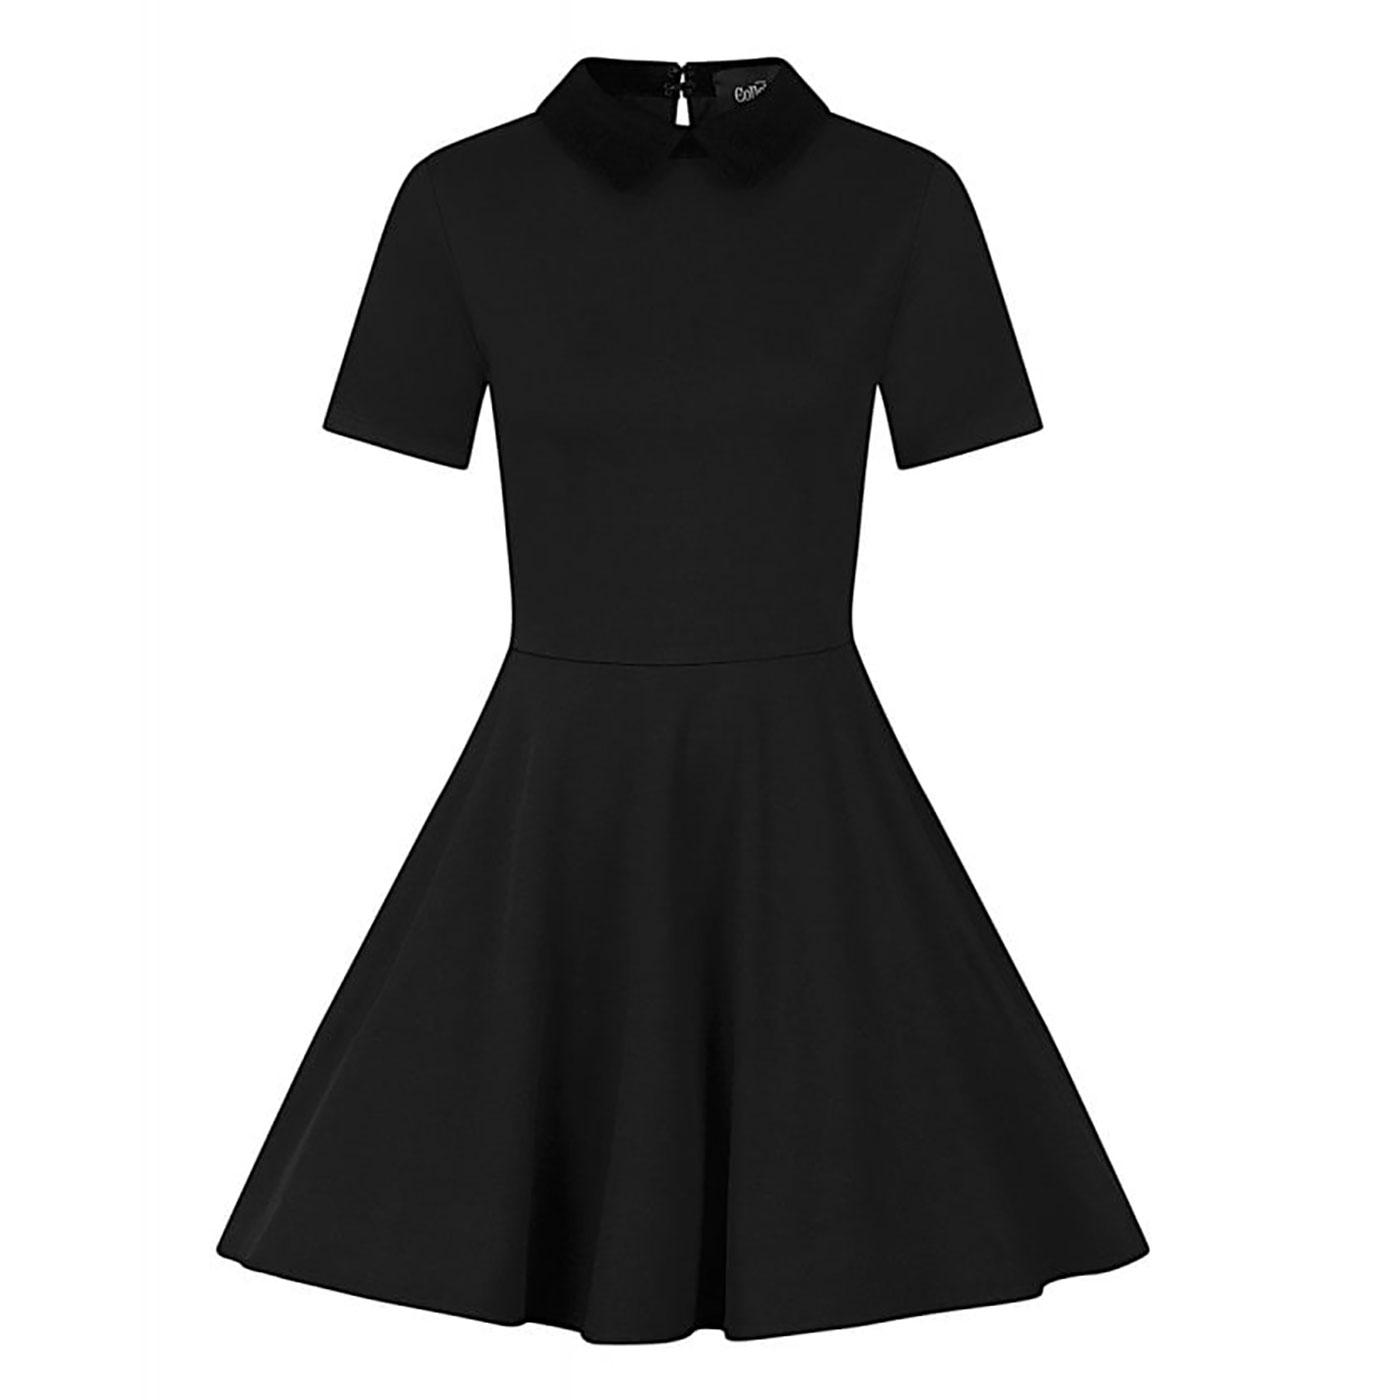 Katy COLLECTIF Peter Pan Collar Retro Skater Dress